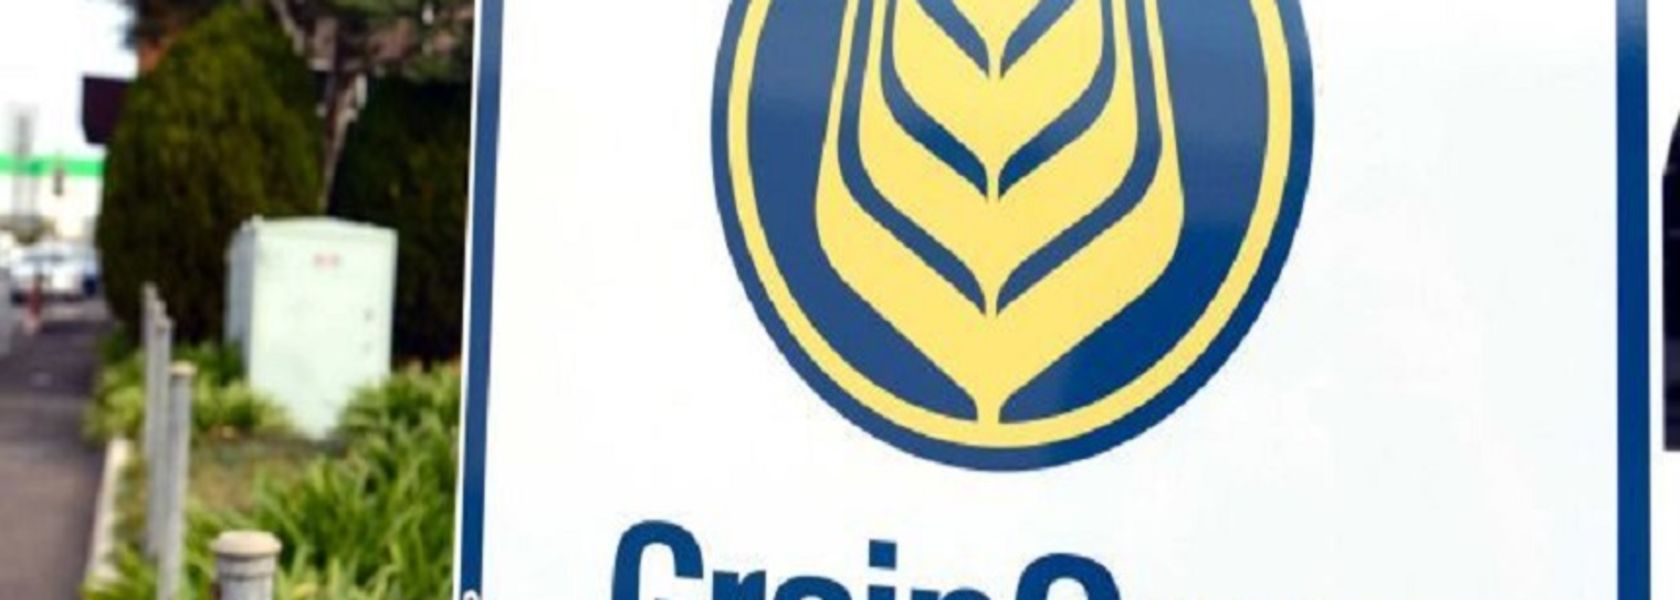 GrainCorp reveal new Chairman; huge profit beckons